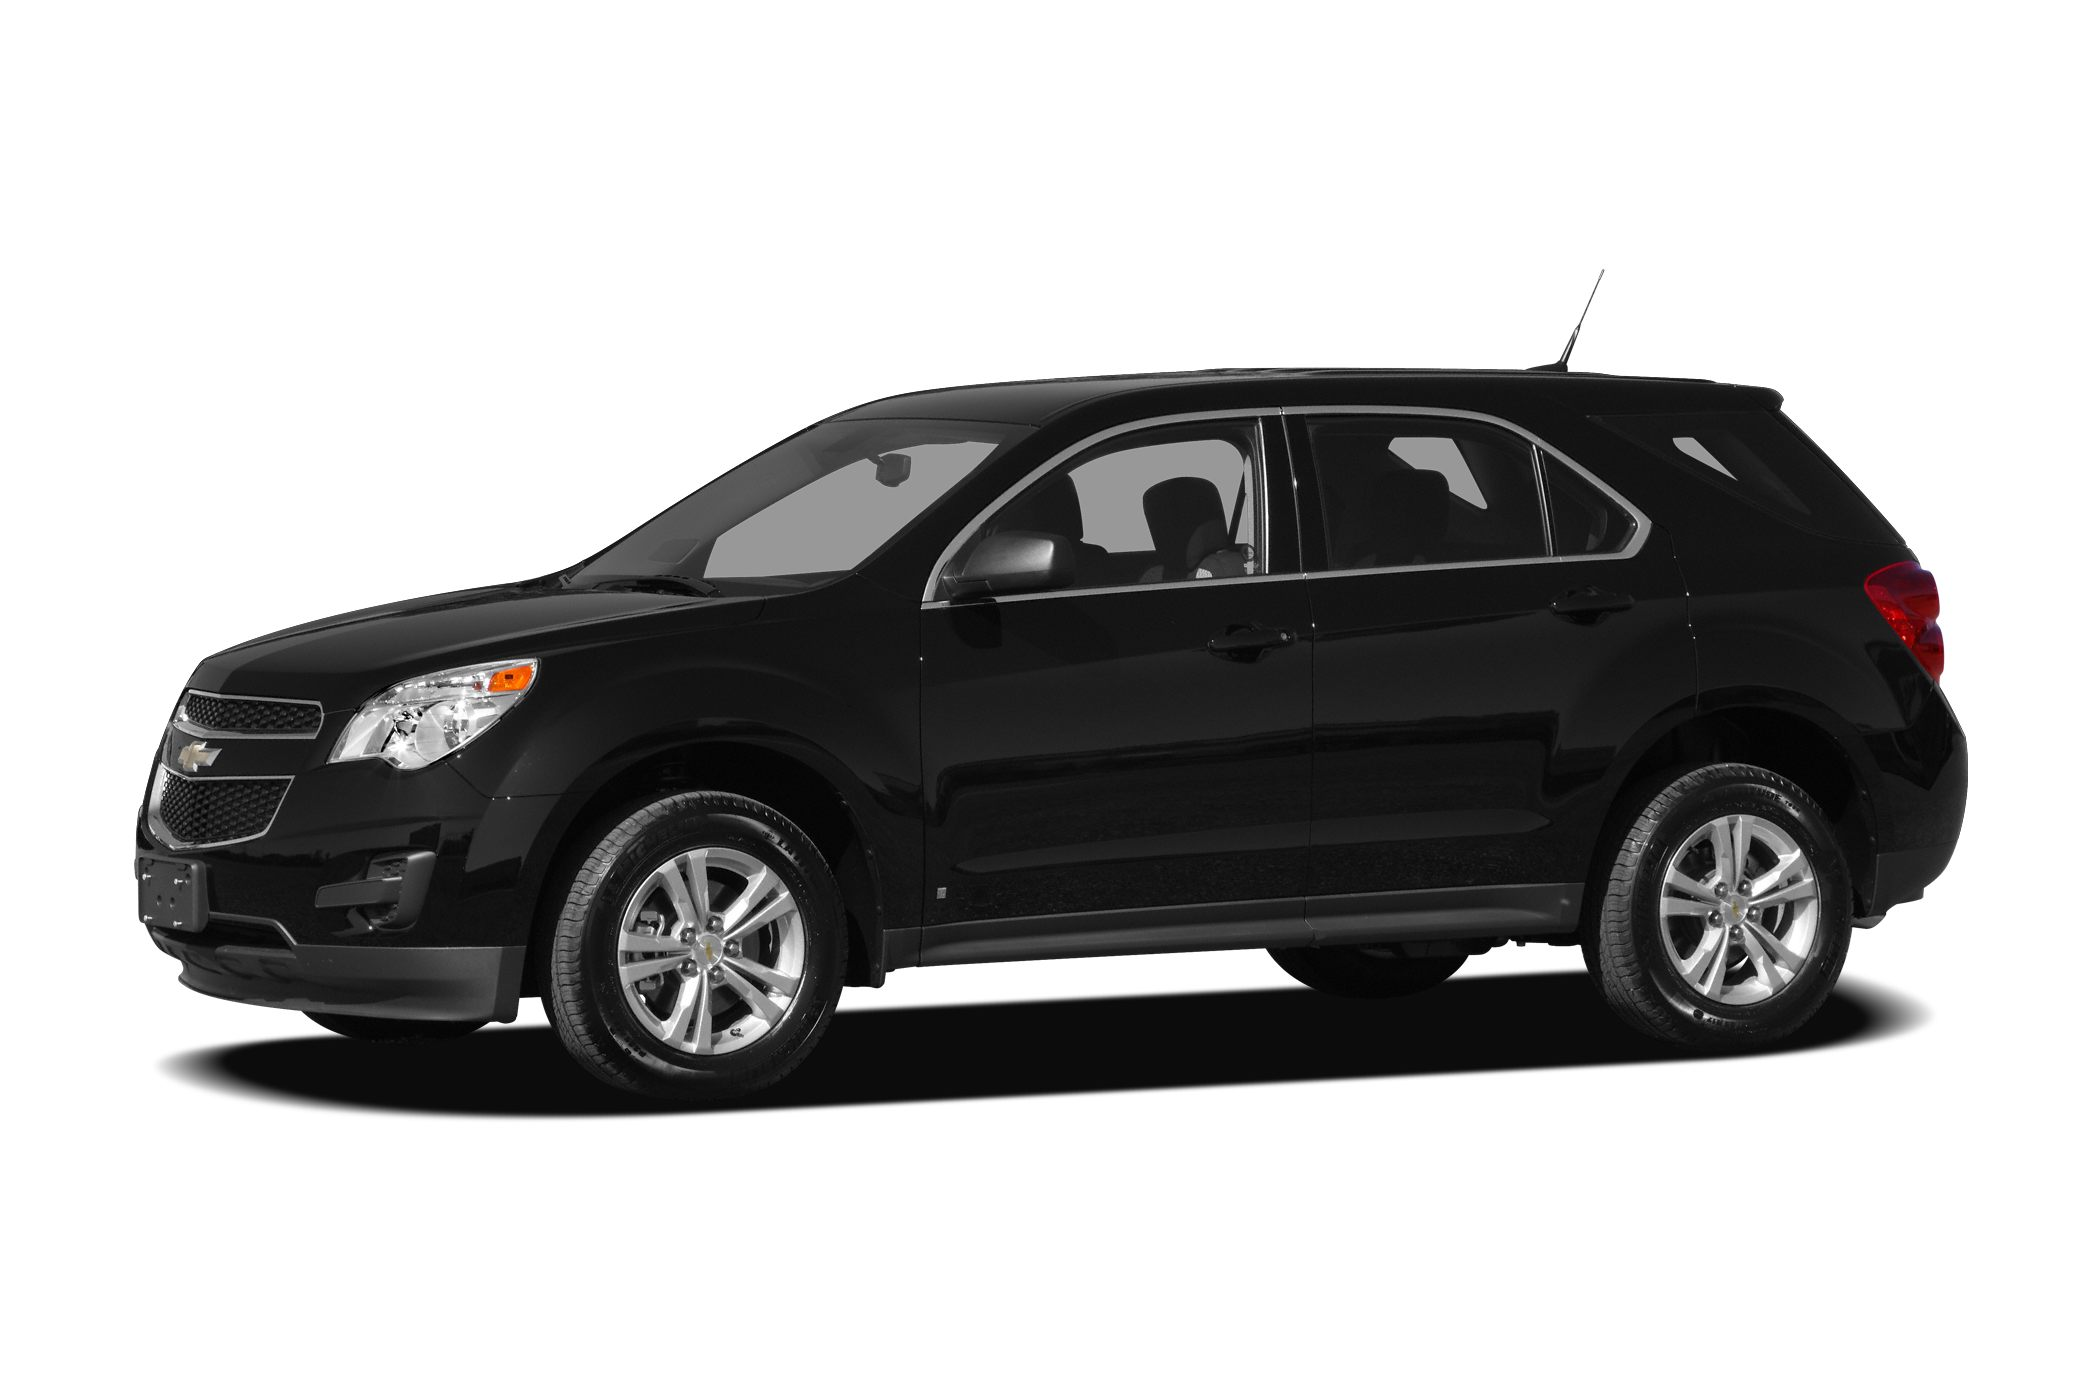 2011 Chevrolet Equinox 2LT Certfied by CARFAX - NO ACCIDENTS and ONE OWNER Want to save some m